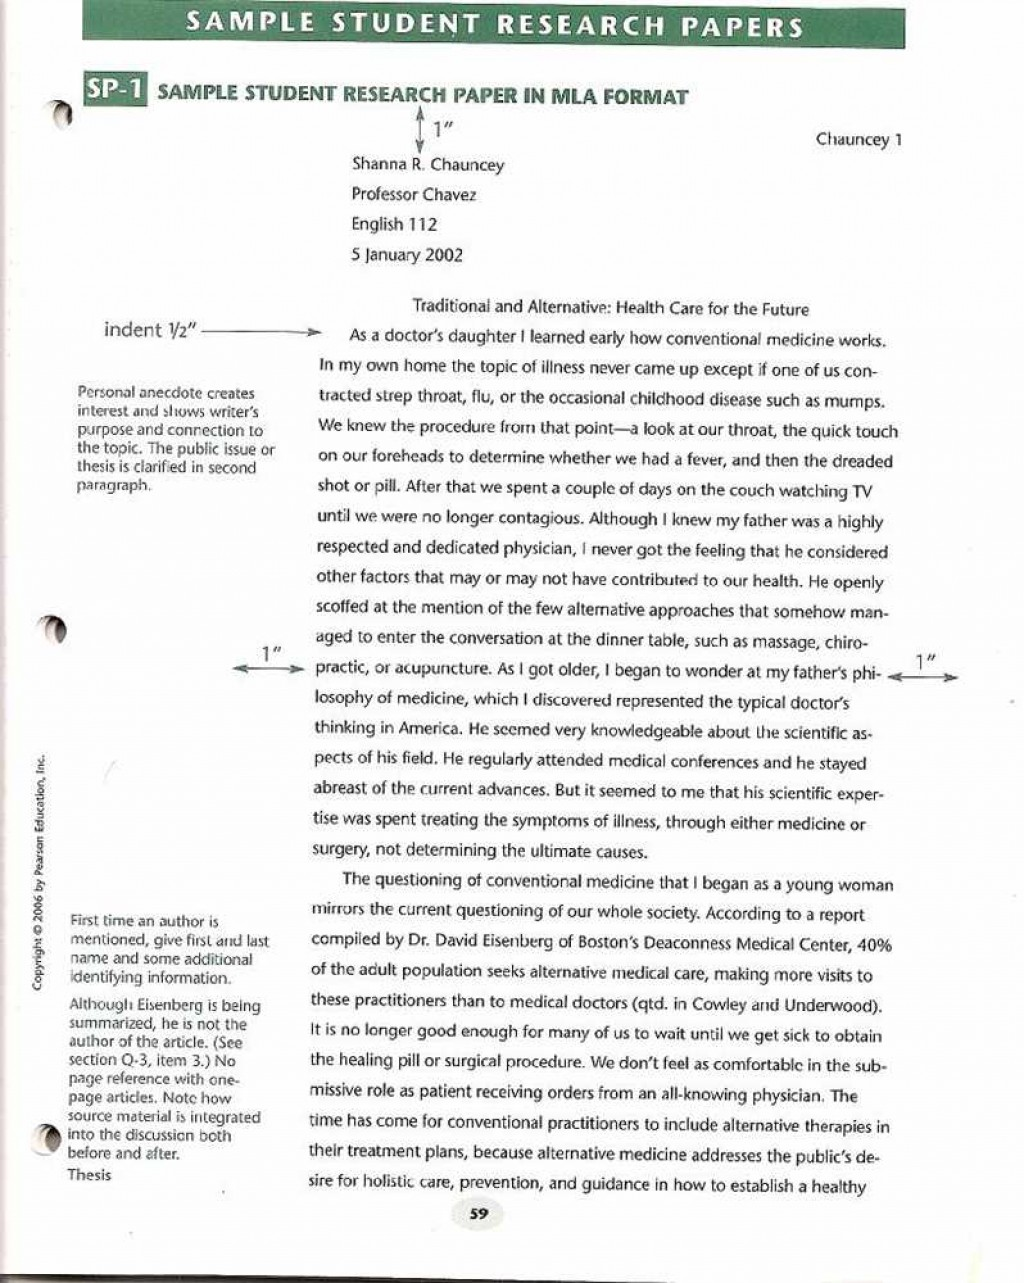 001 Research Paper Religion Papers Online Stupendous Free Read Download Russian Large